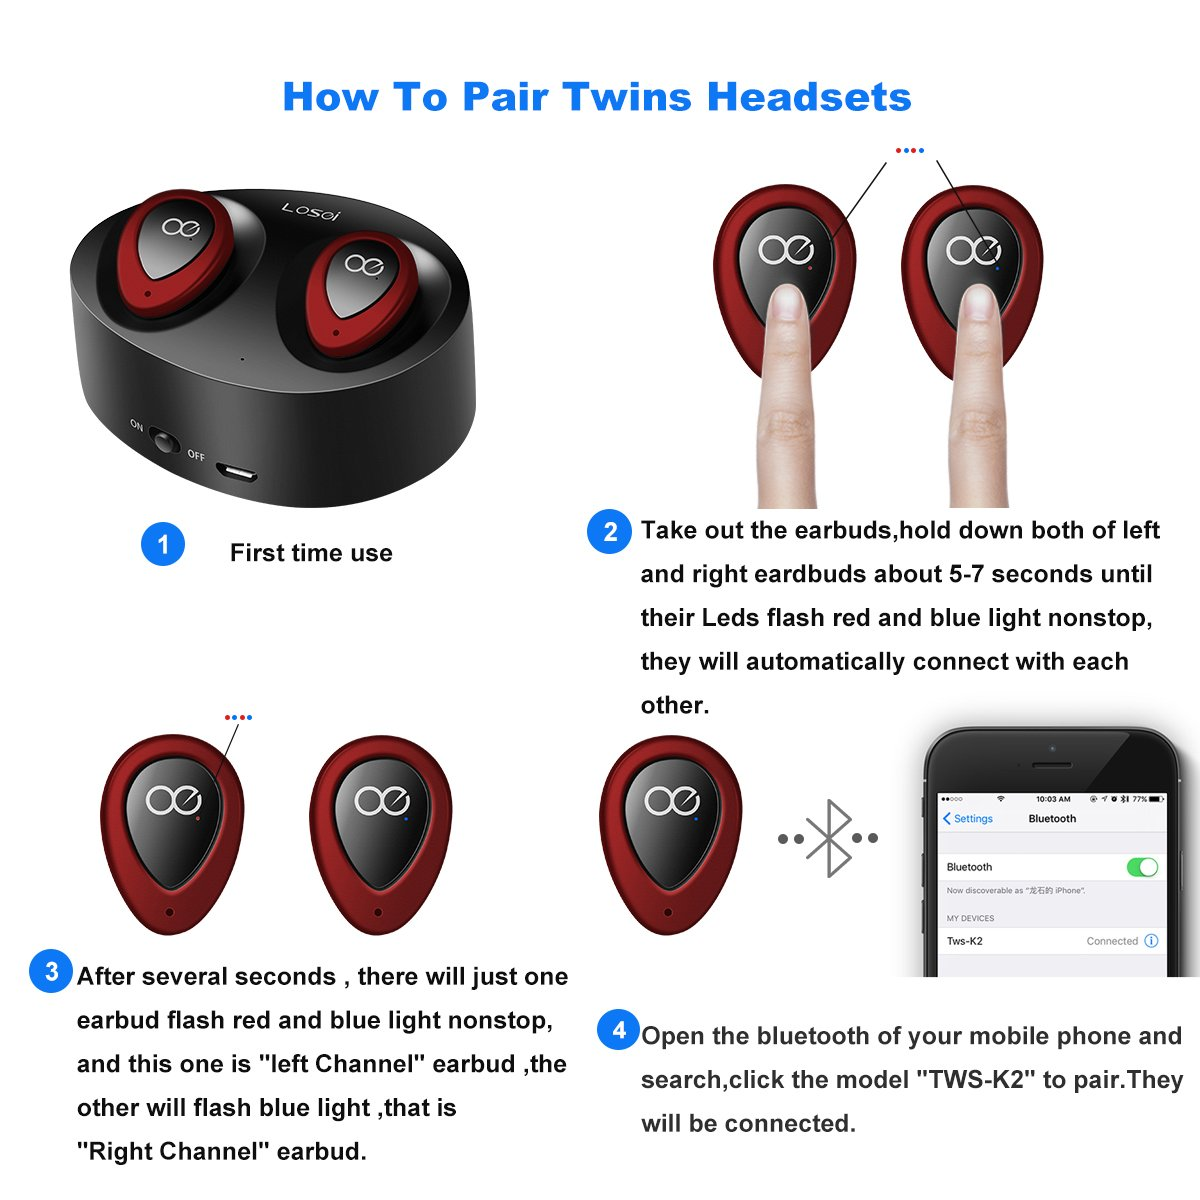 Losei Headphones Tws K2 Pair Your Device Via Bluetooth Shortmanual Com